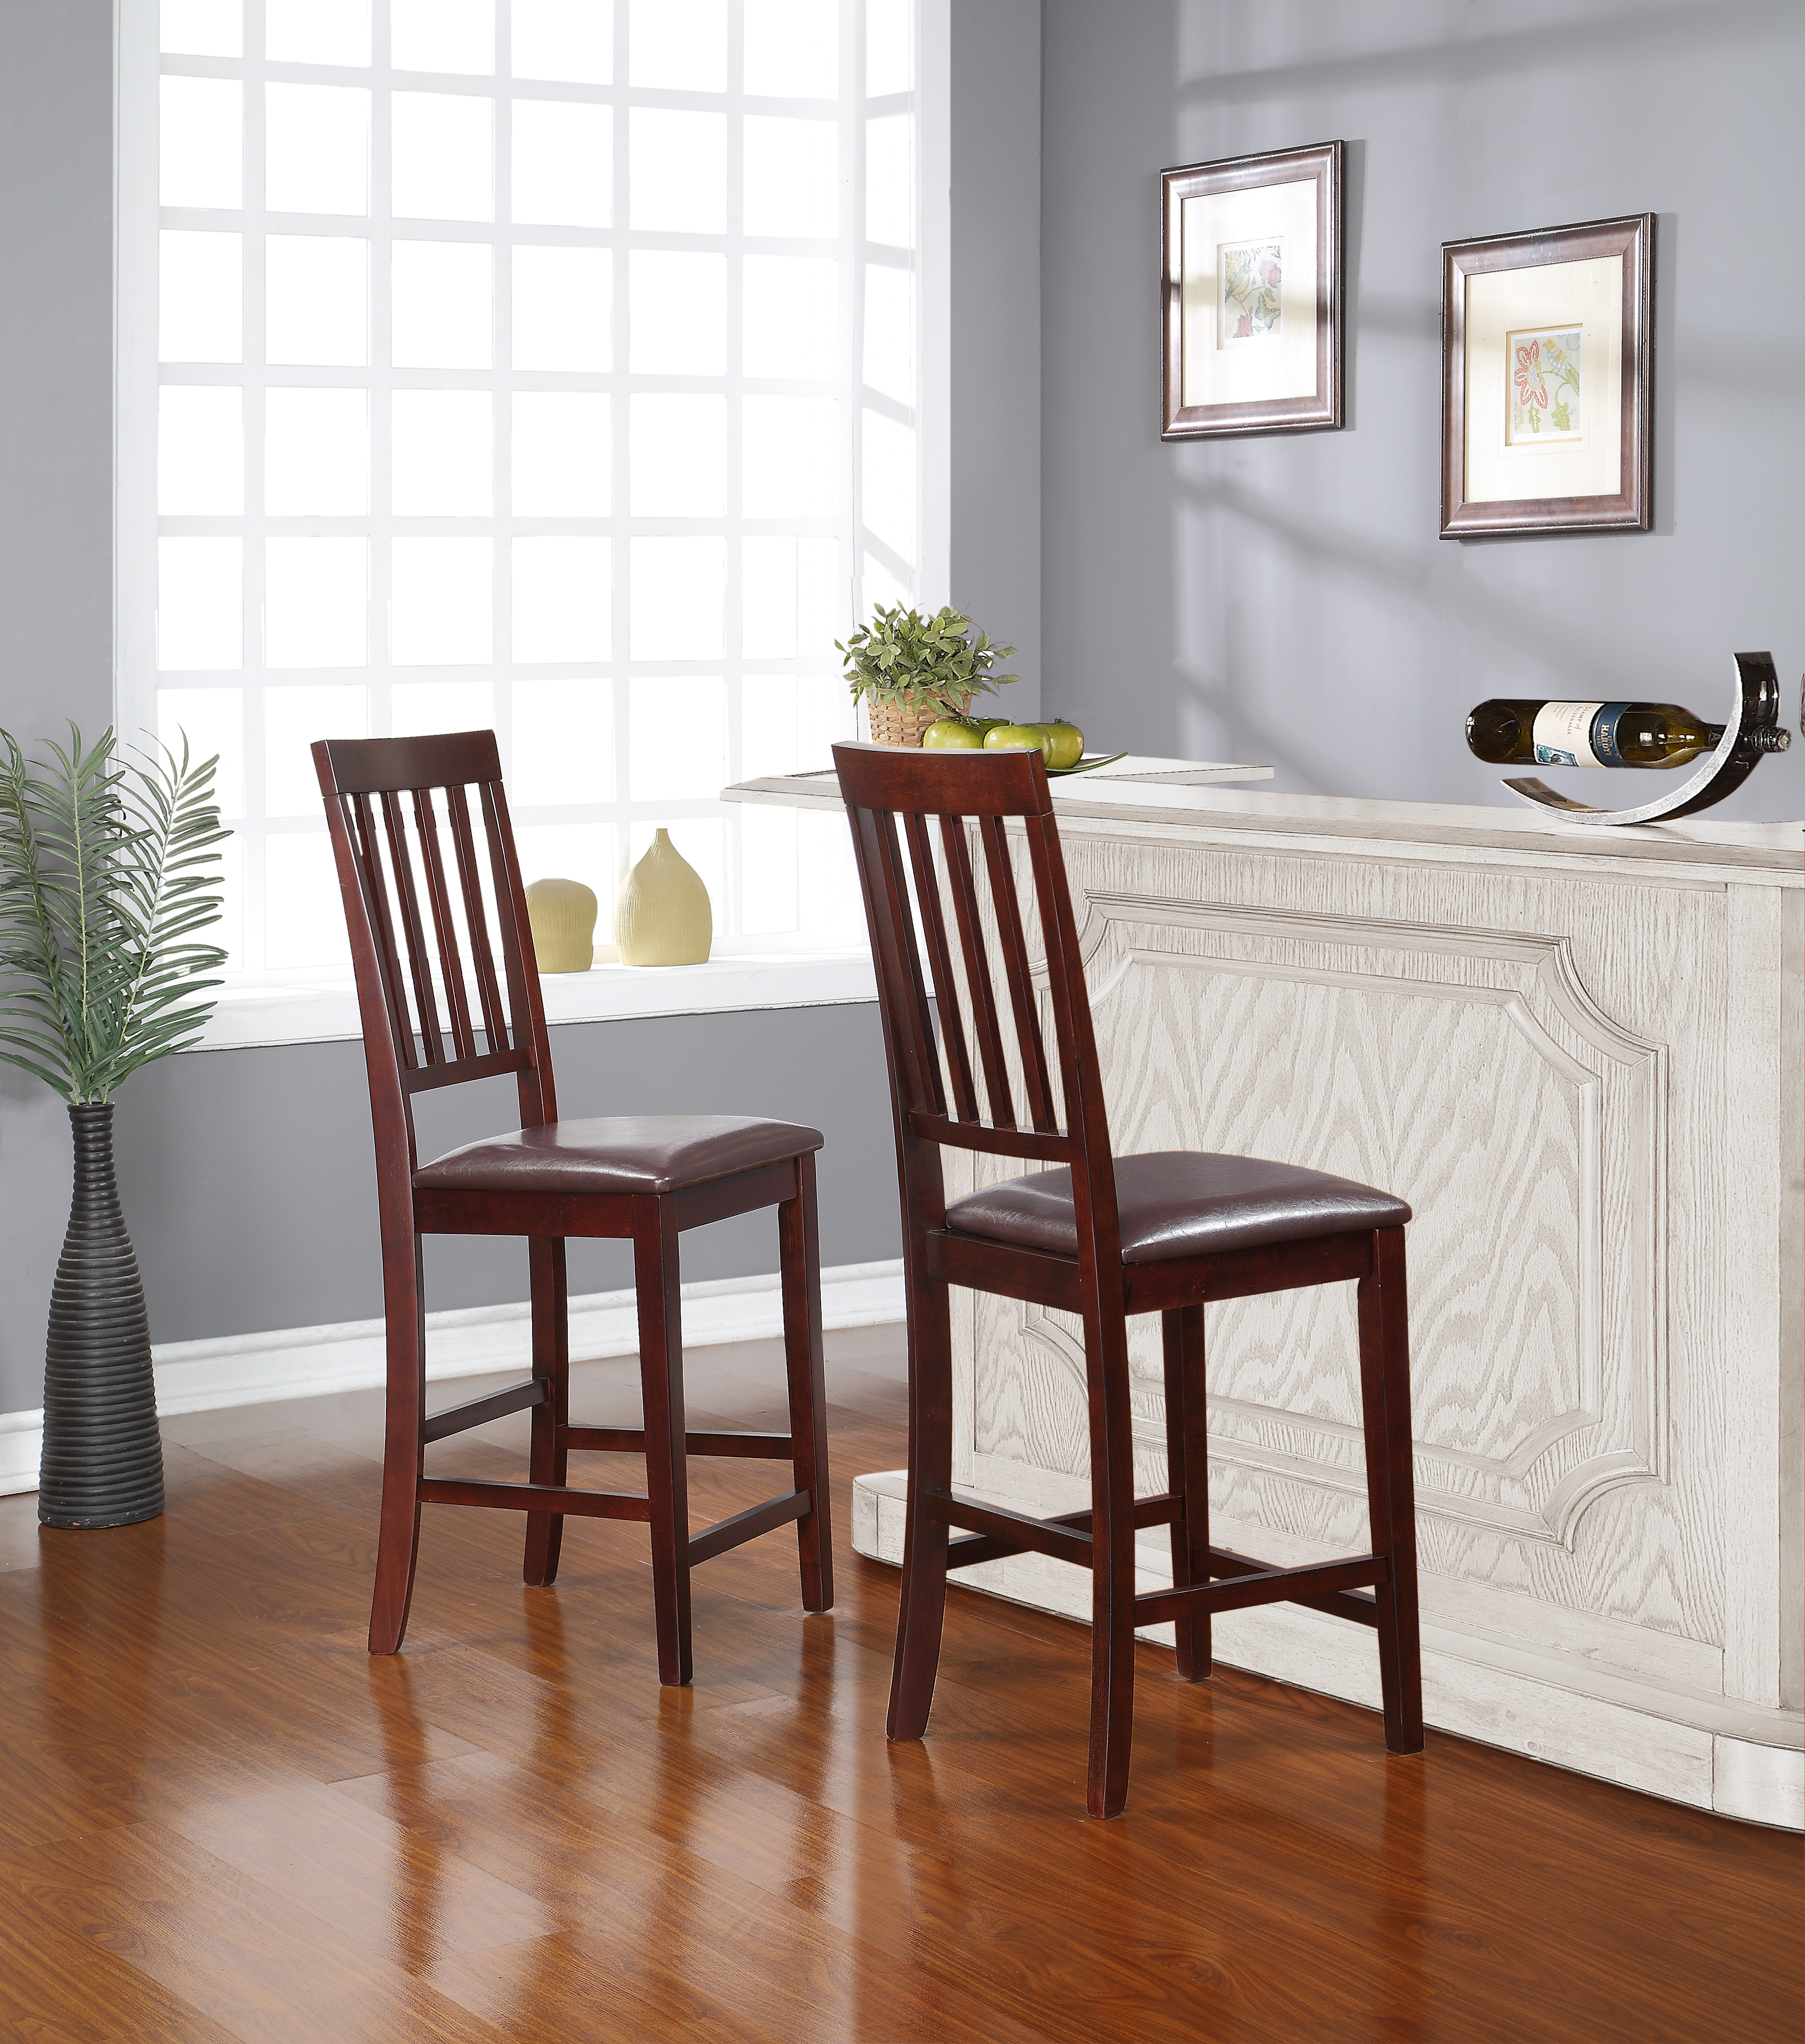 Essential Home Cayman Dining Chairs 2 pack  Home  Furniture  Dining  Kitchen Furniture